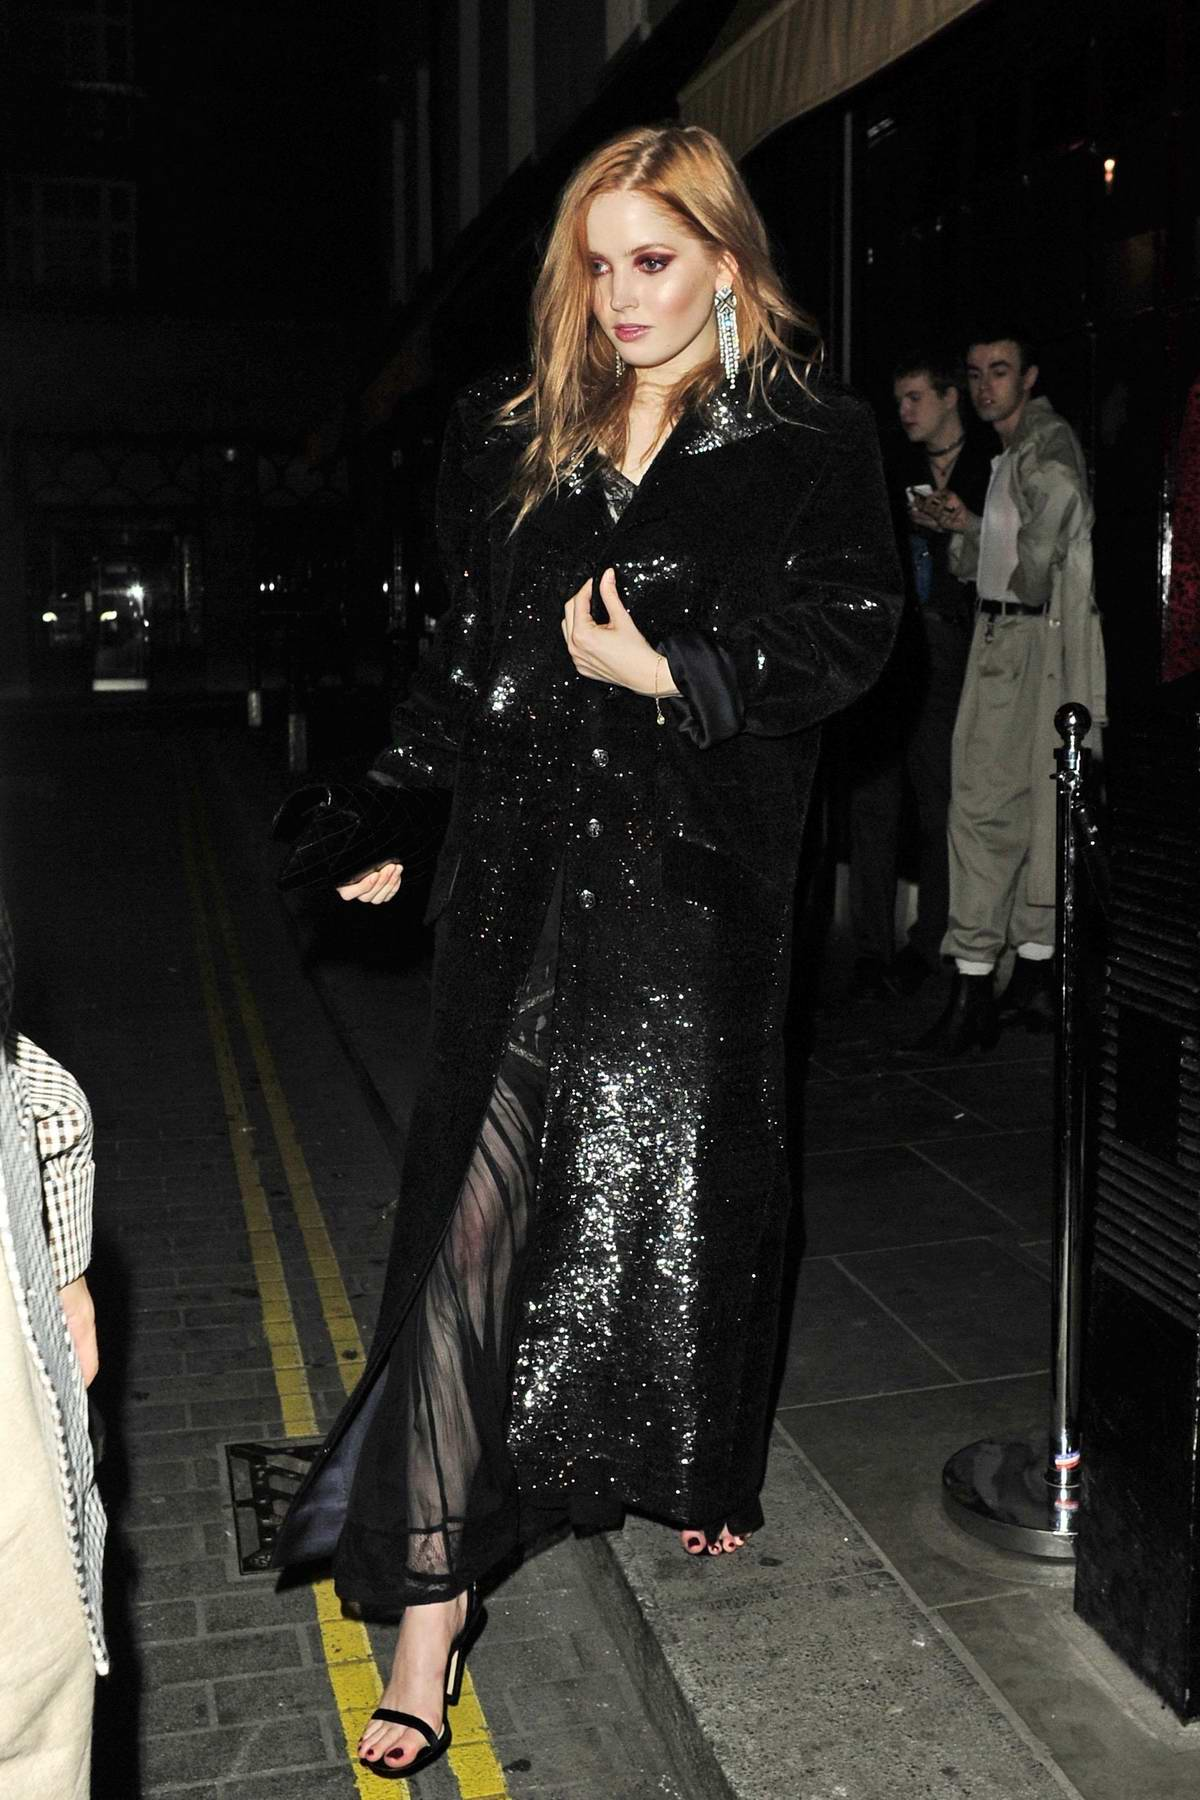 Ellie Bamber leaves the LOVE Magazine 10th Birthday Party at Loulou's during London Fashion Week in London, UK